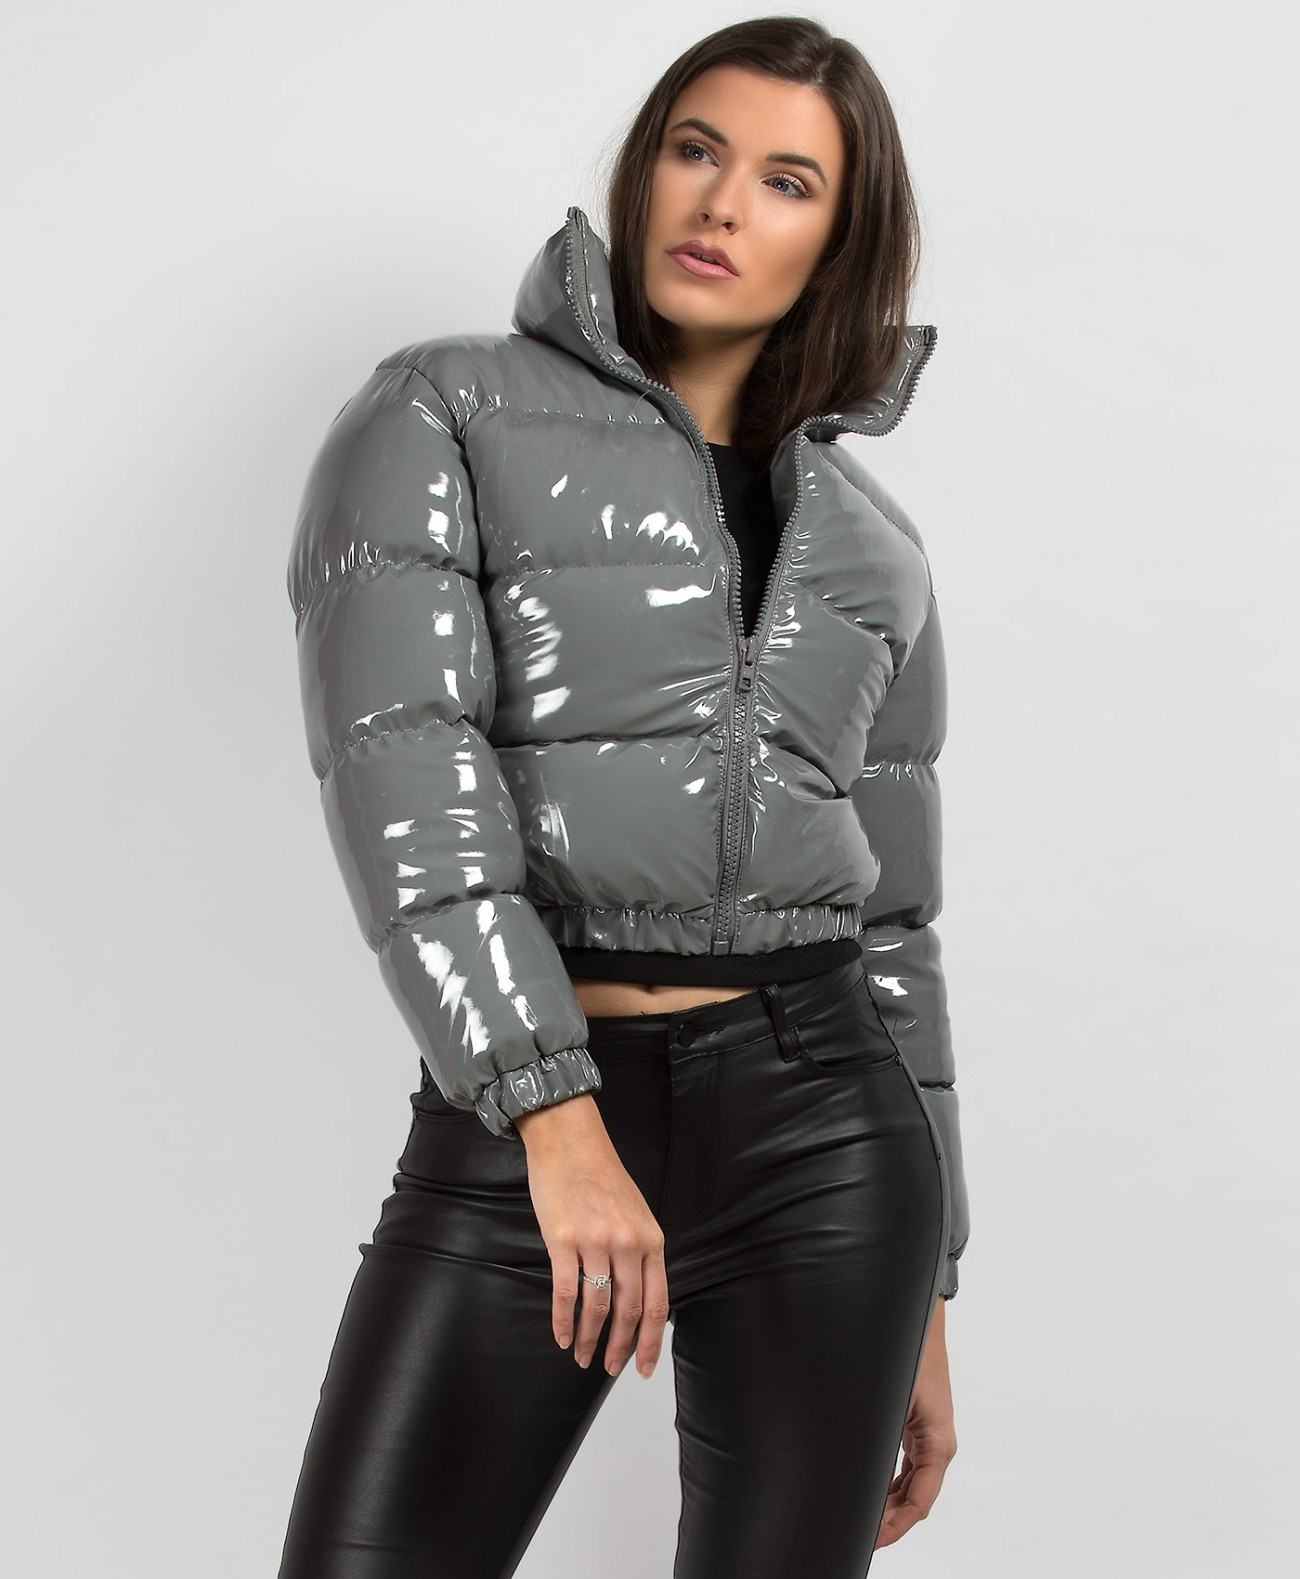 ONLY Synthetic Cropped Puffer Jacket in Black - Lyst